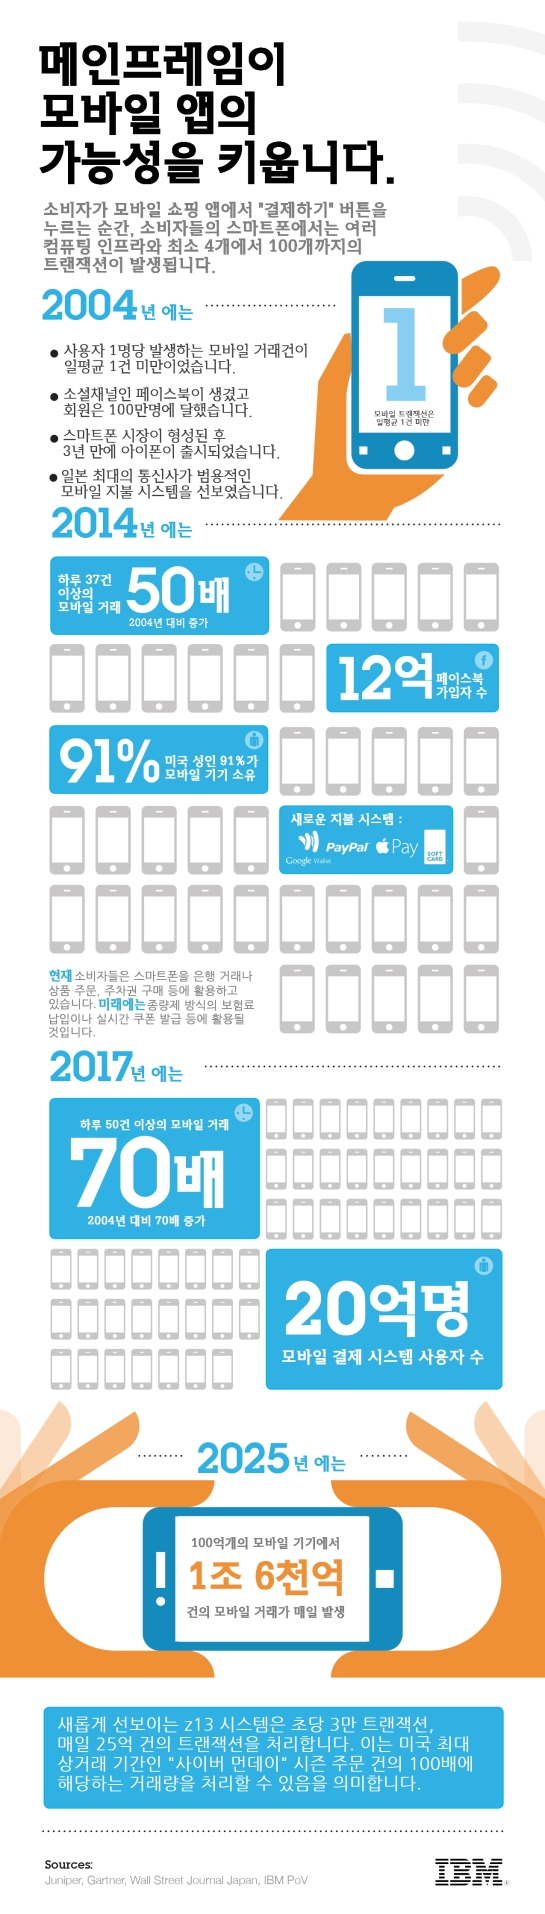 Mobile Transactions Infographic Color